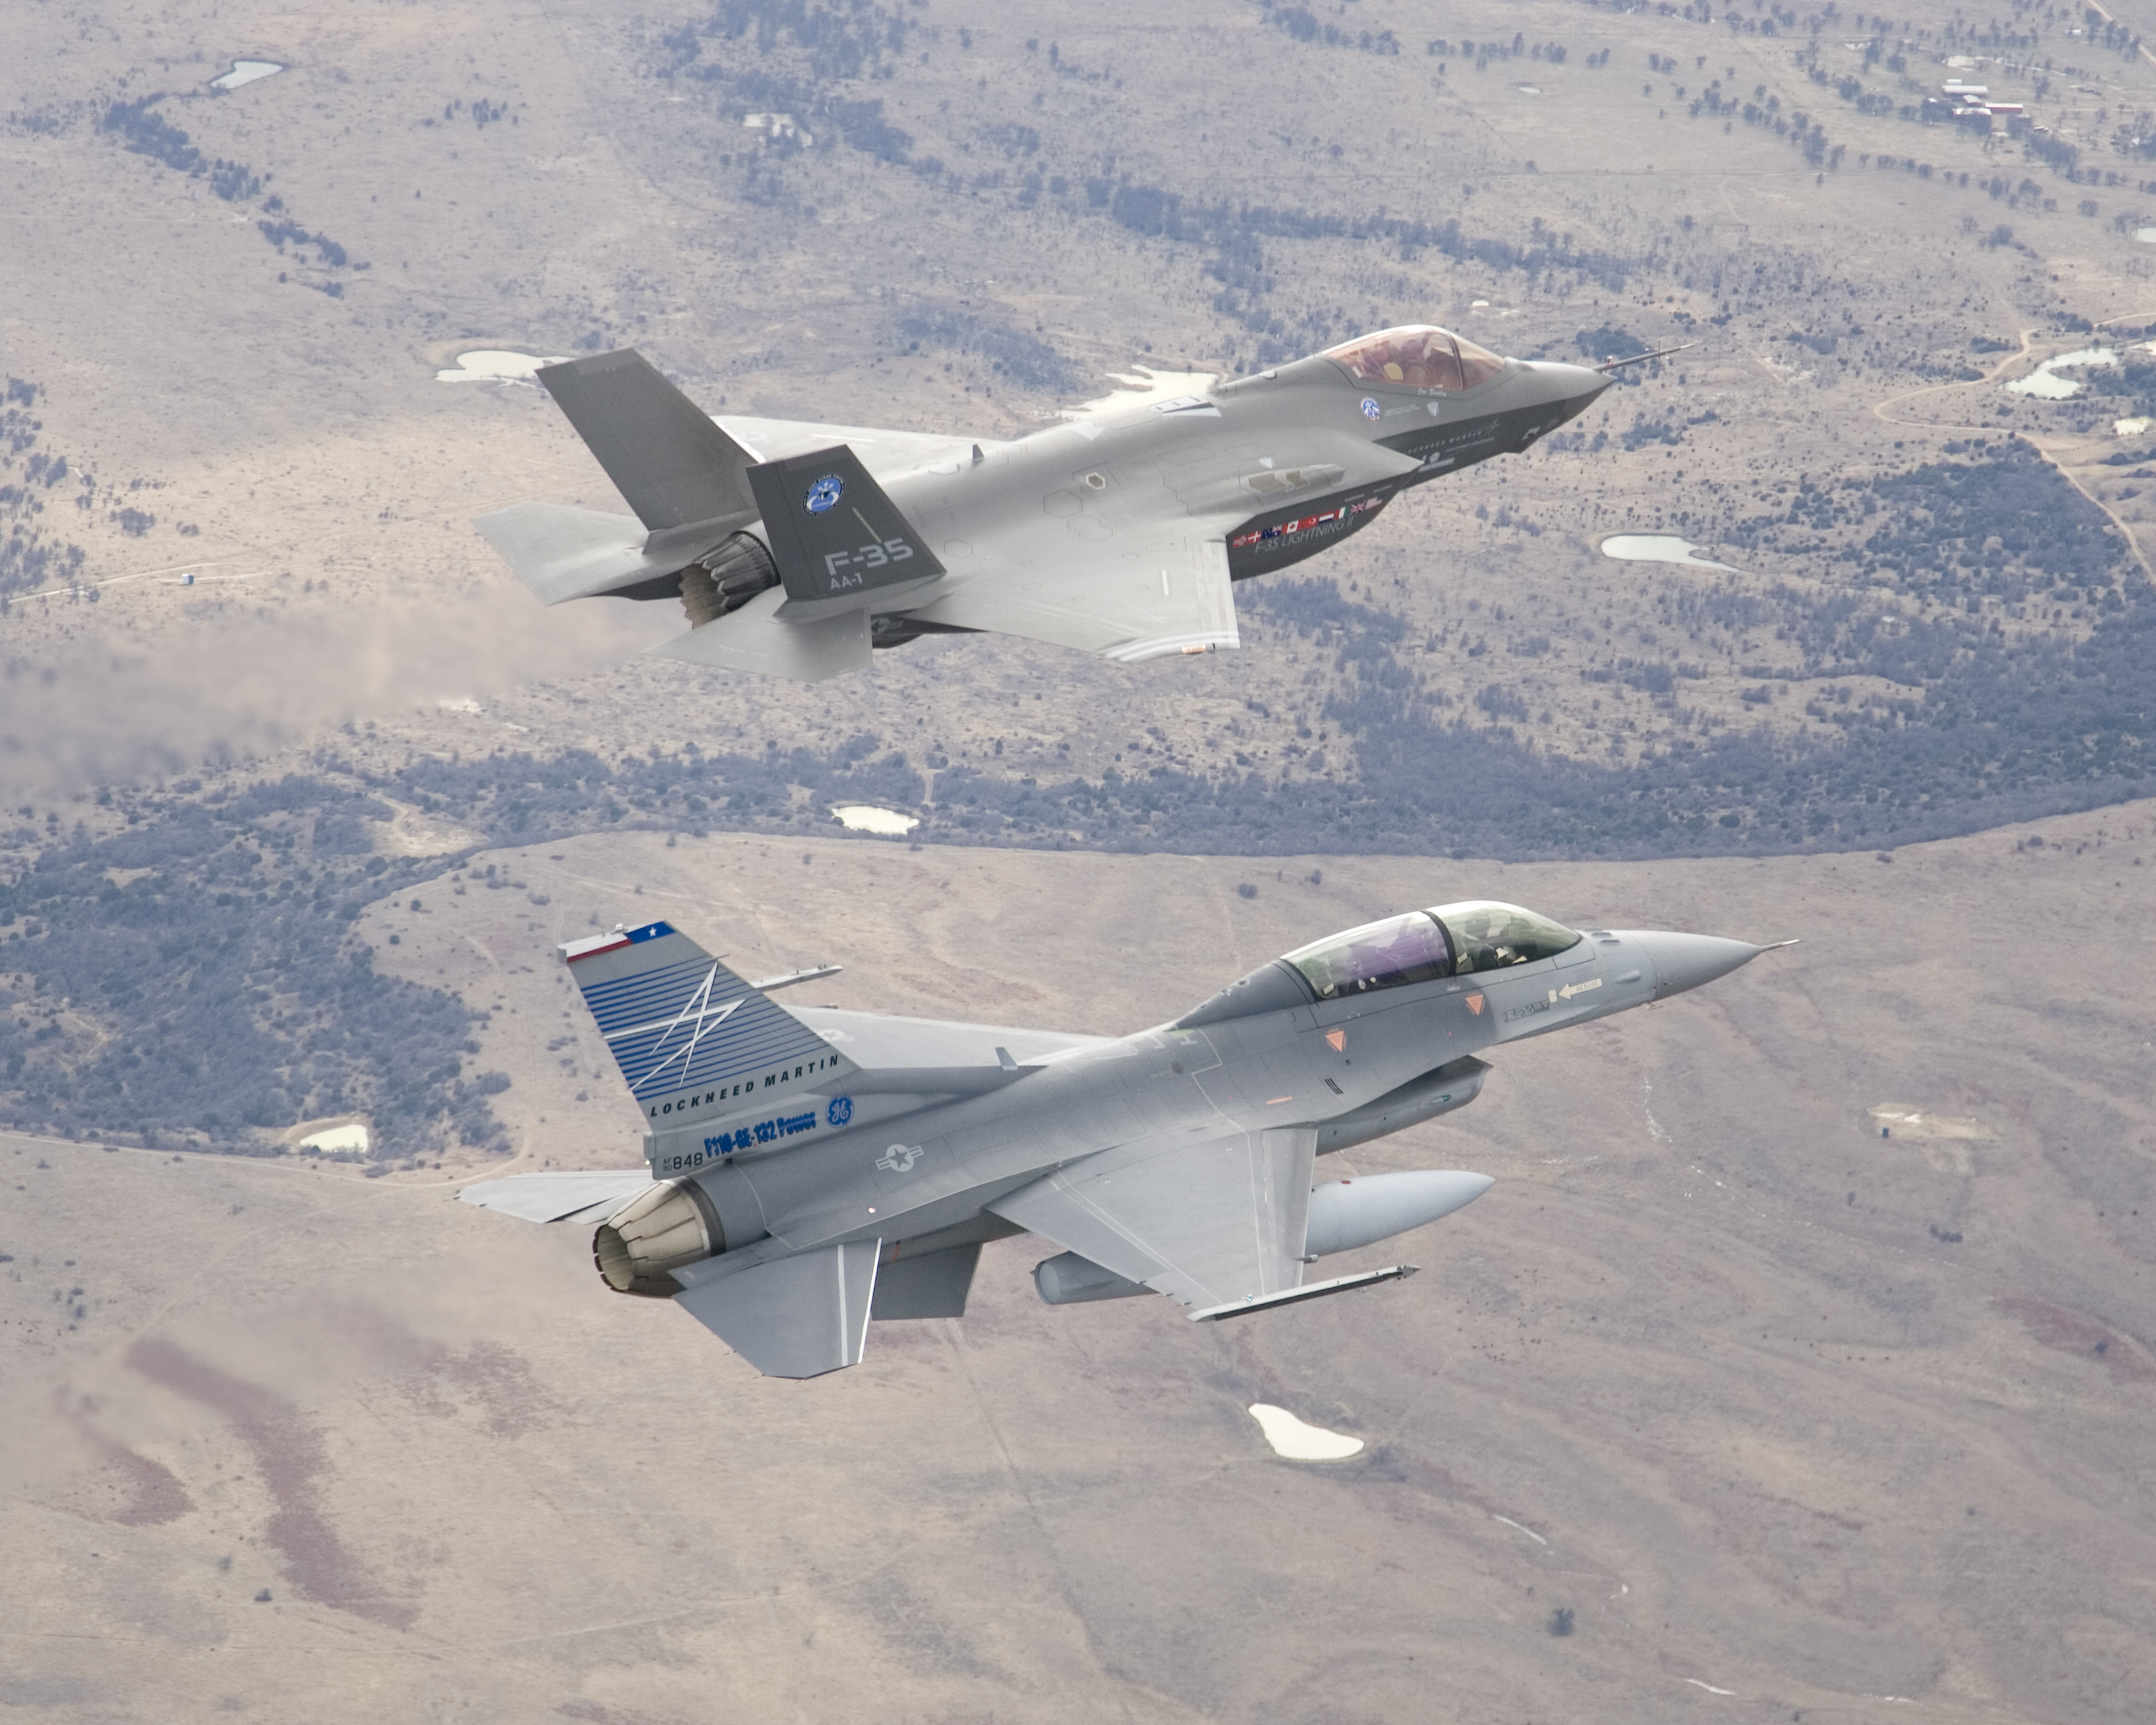 Lockheed Martin F-35A (AA-1) ''Lightning II'' an F-35A CTOL (conventional takeoff and landing) (test jet) with a General Dynamics F-16D ''Fighting Falcon'' (sn 90-0848) Chase Plane 2008, Aircraft, Airplane, Airplane wing, Outdoor, HQ Photo